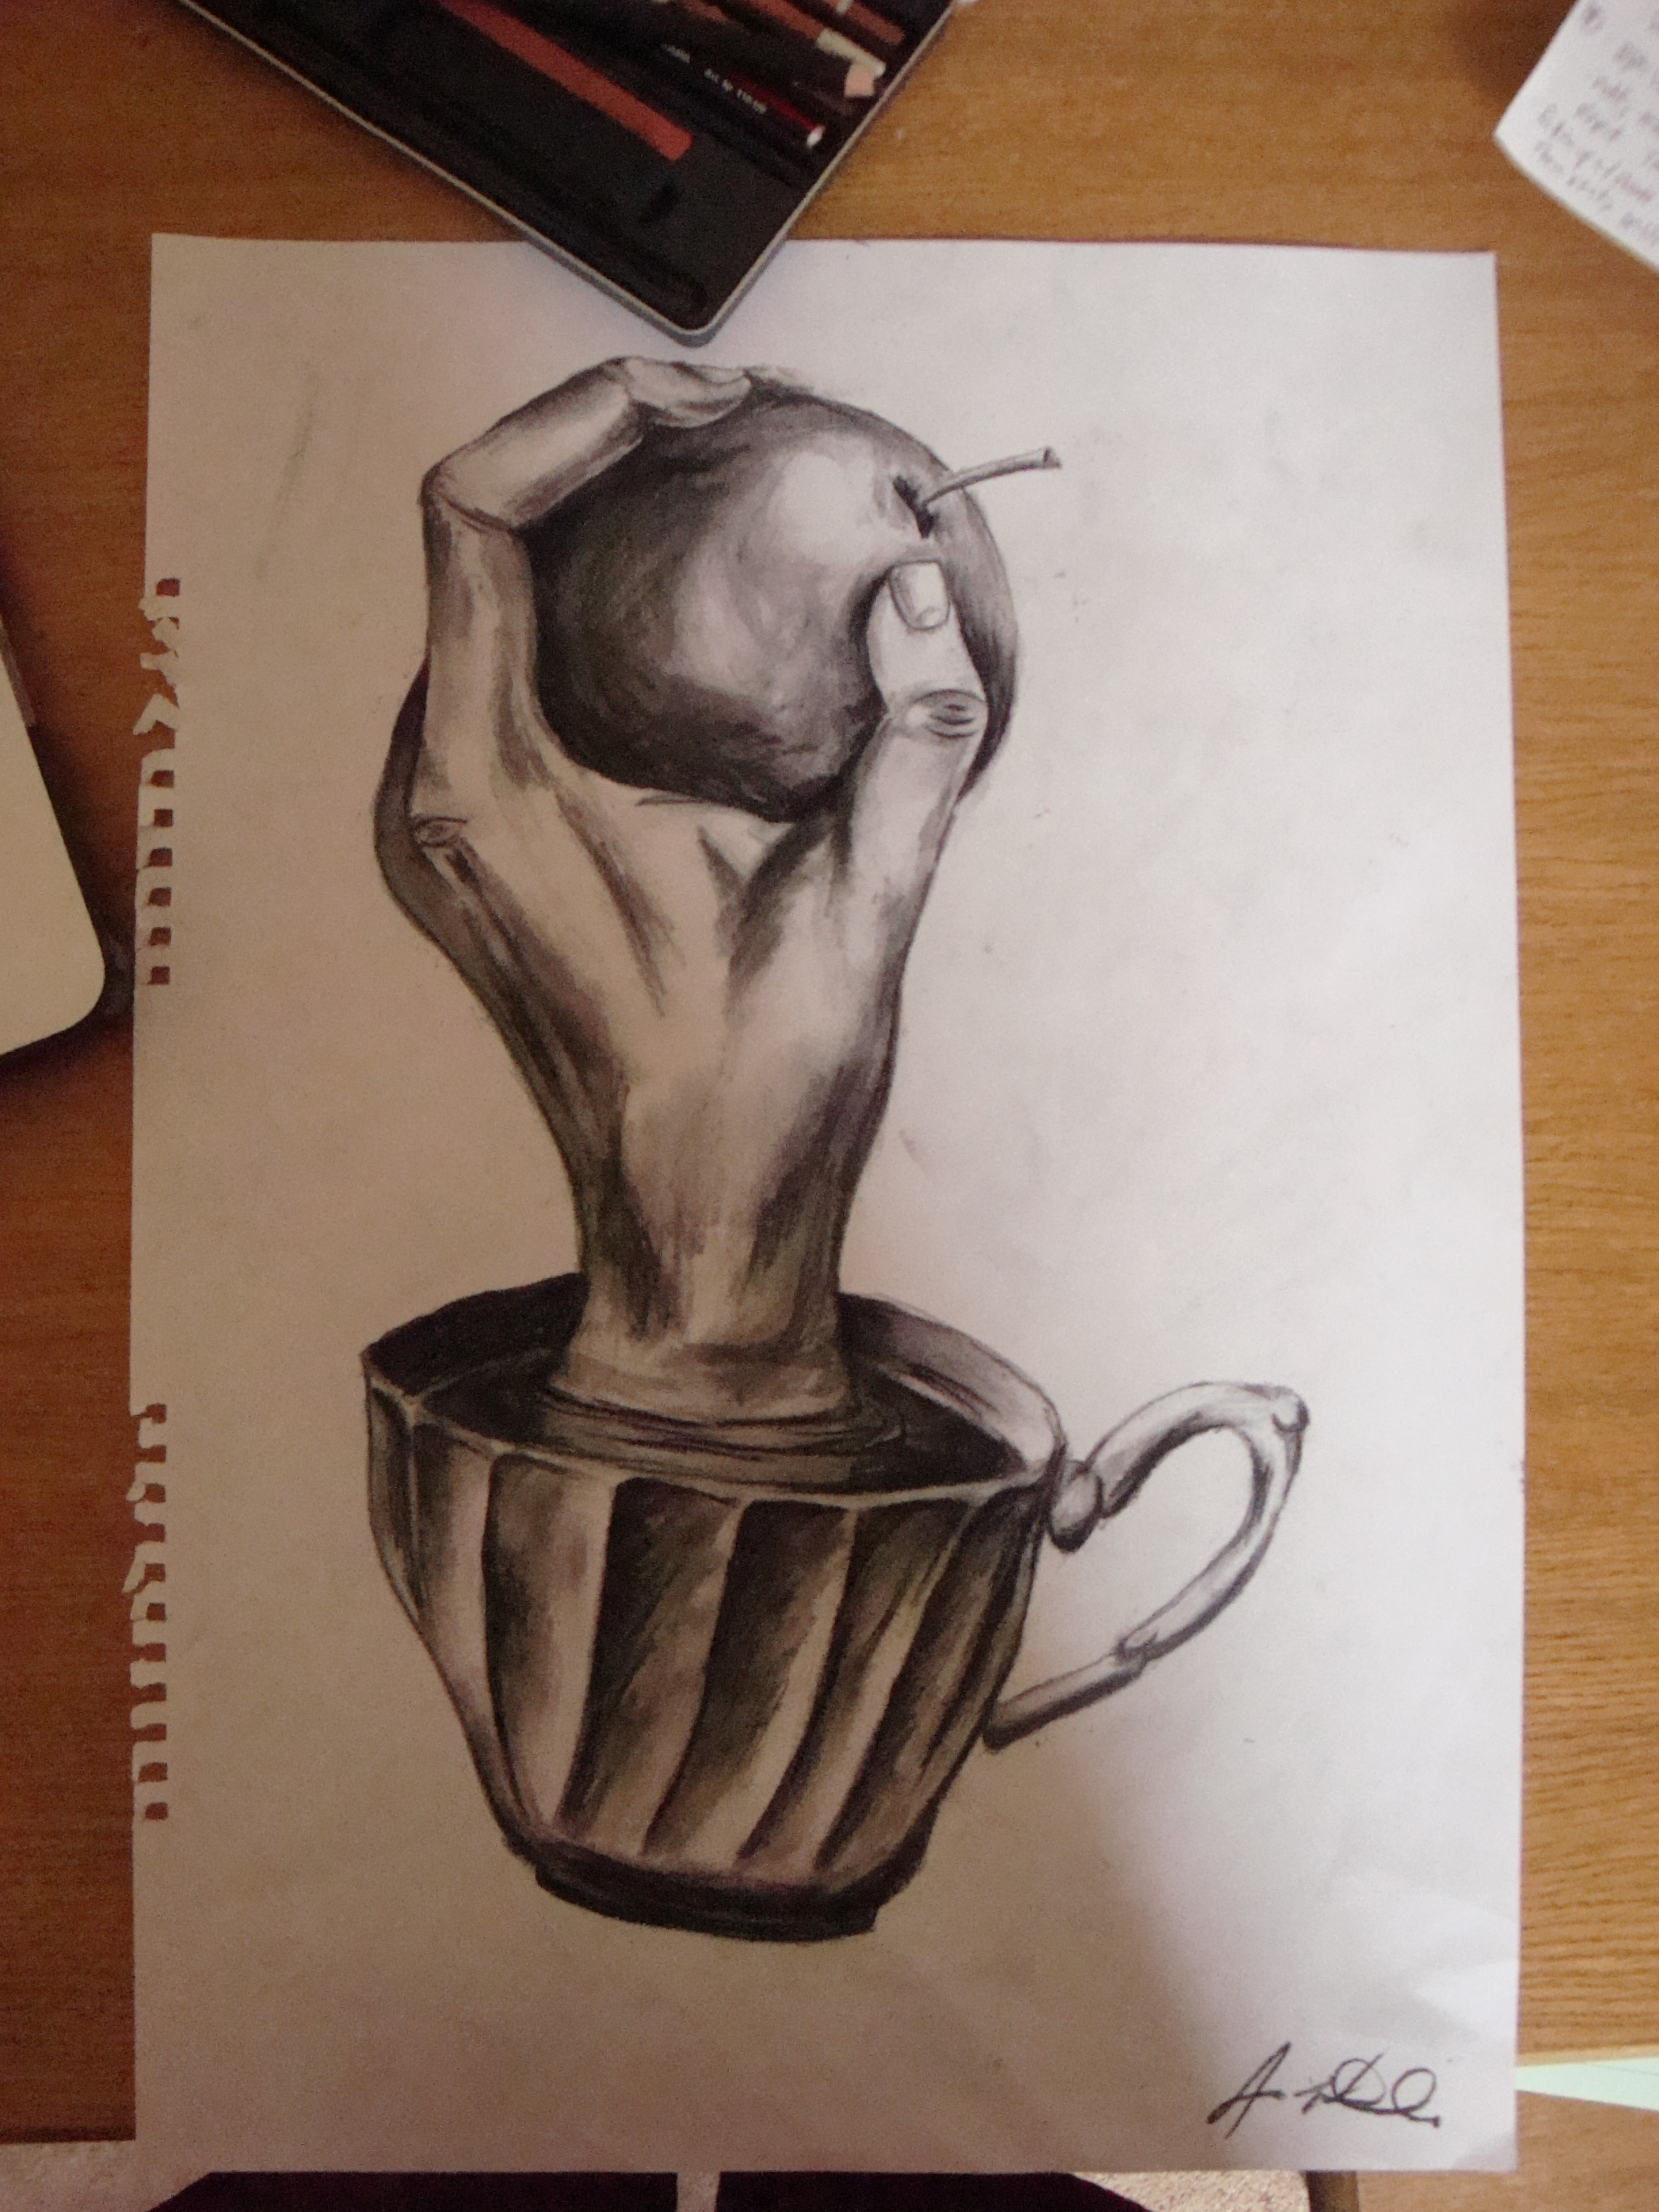 Ideas Emerge over a Cup of Good Tea